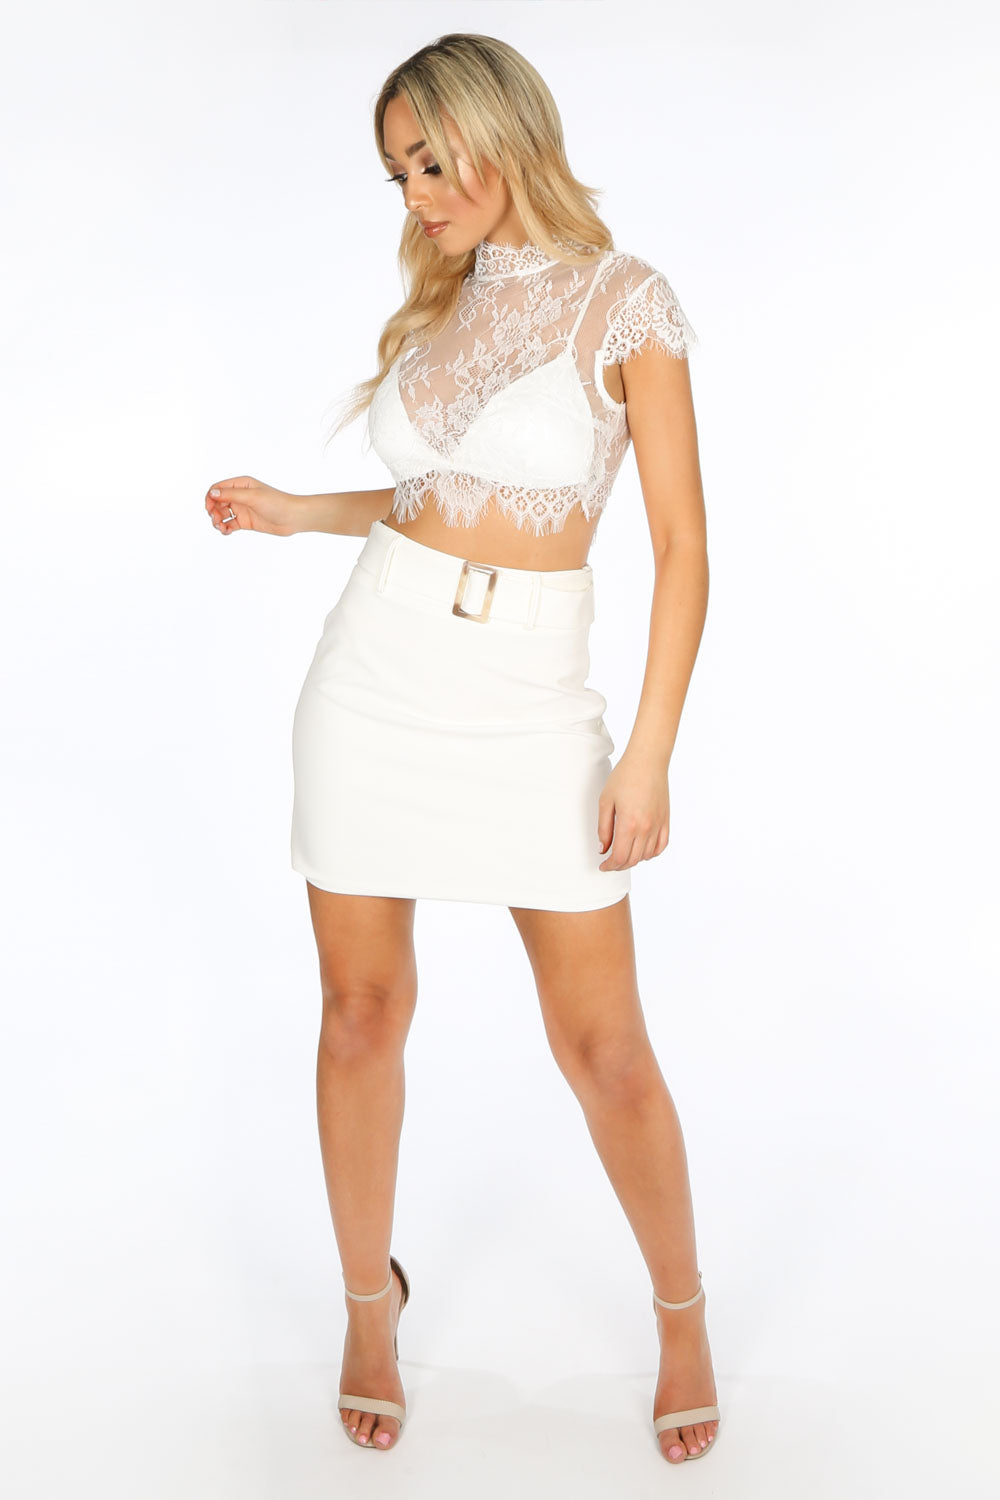 White Floral Lace Crop Top With Bralet